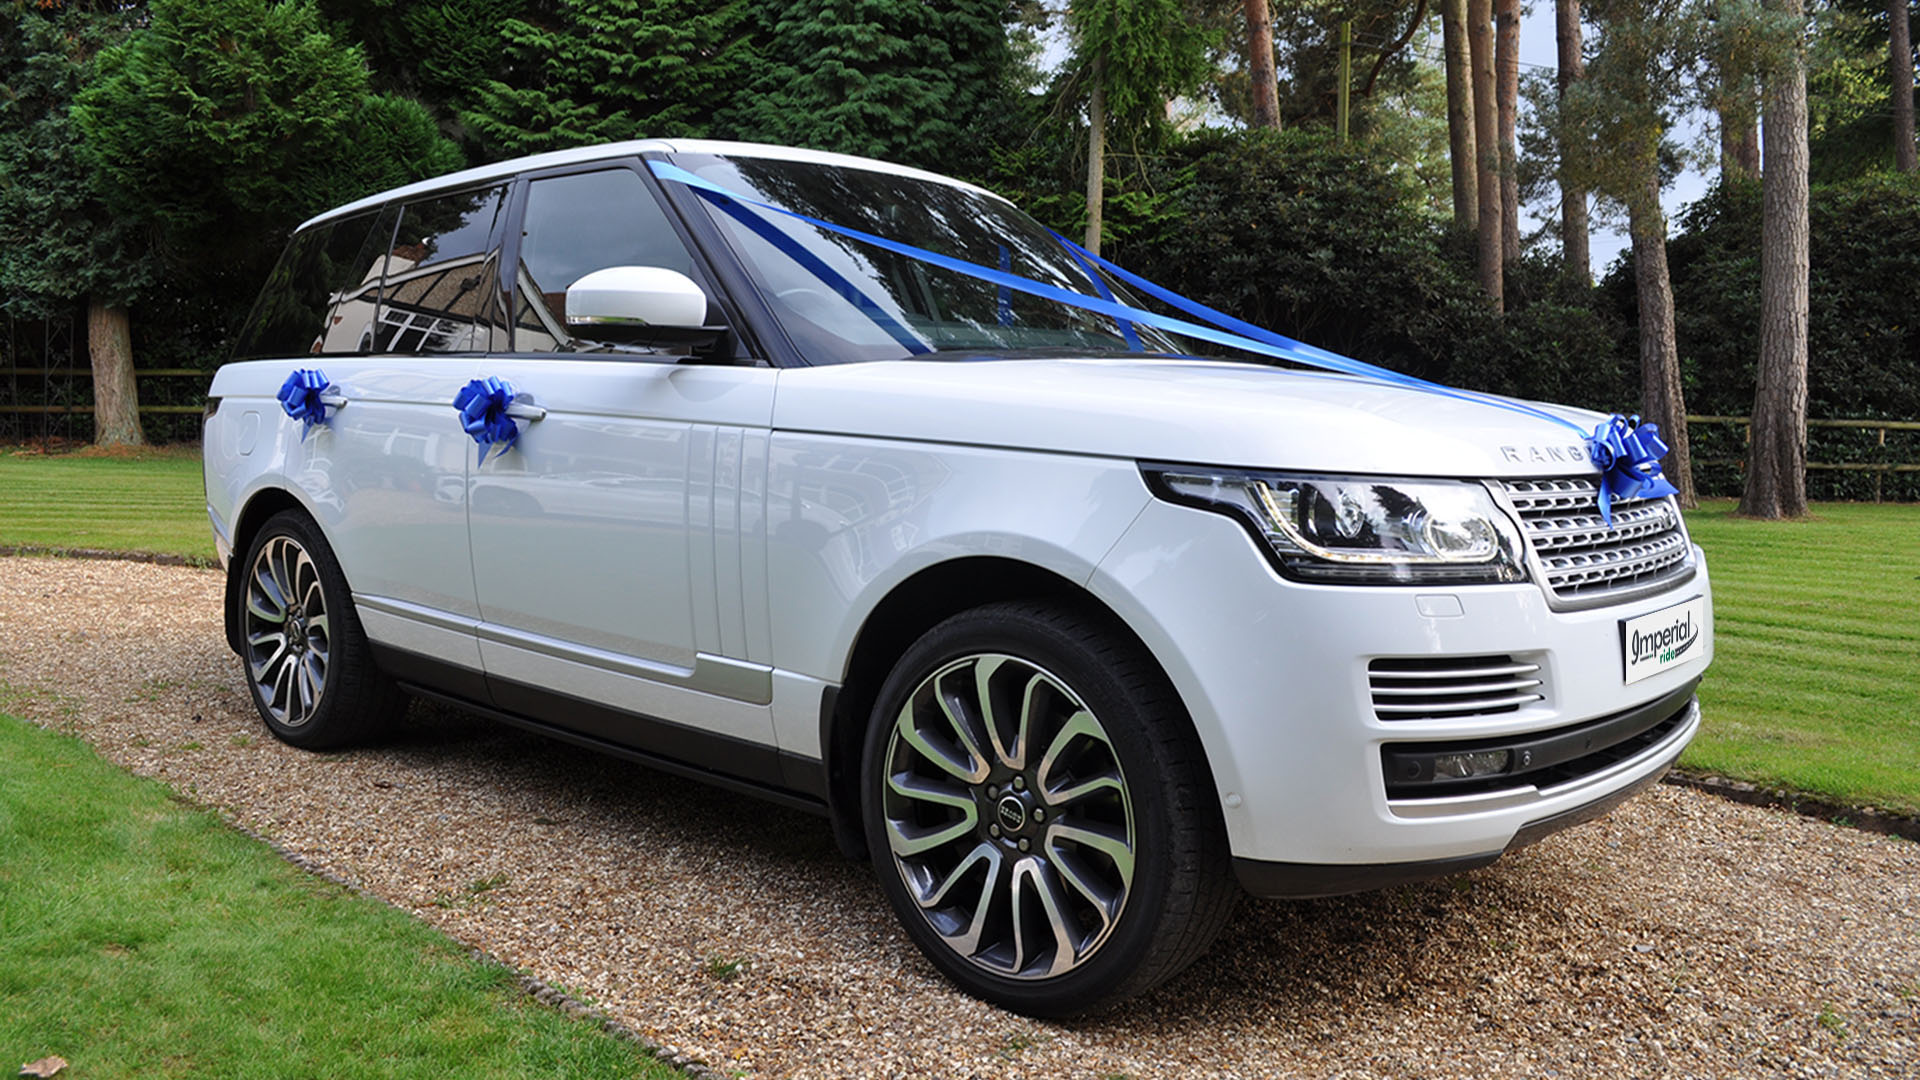 range-rover-wedding-hire-in-kingston-upon-thames